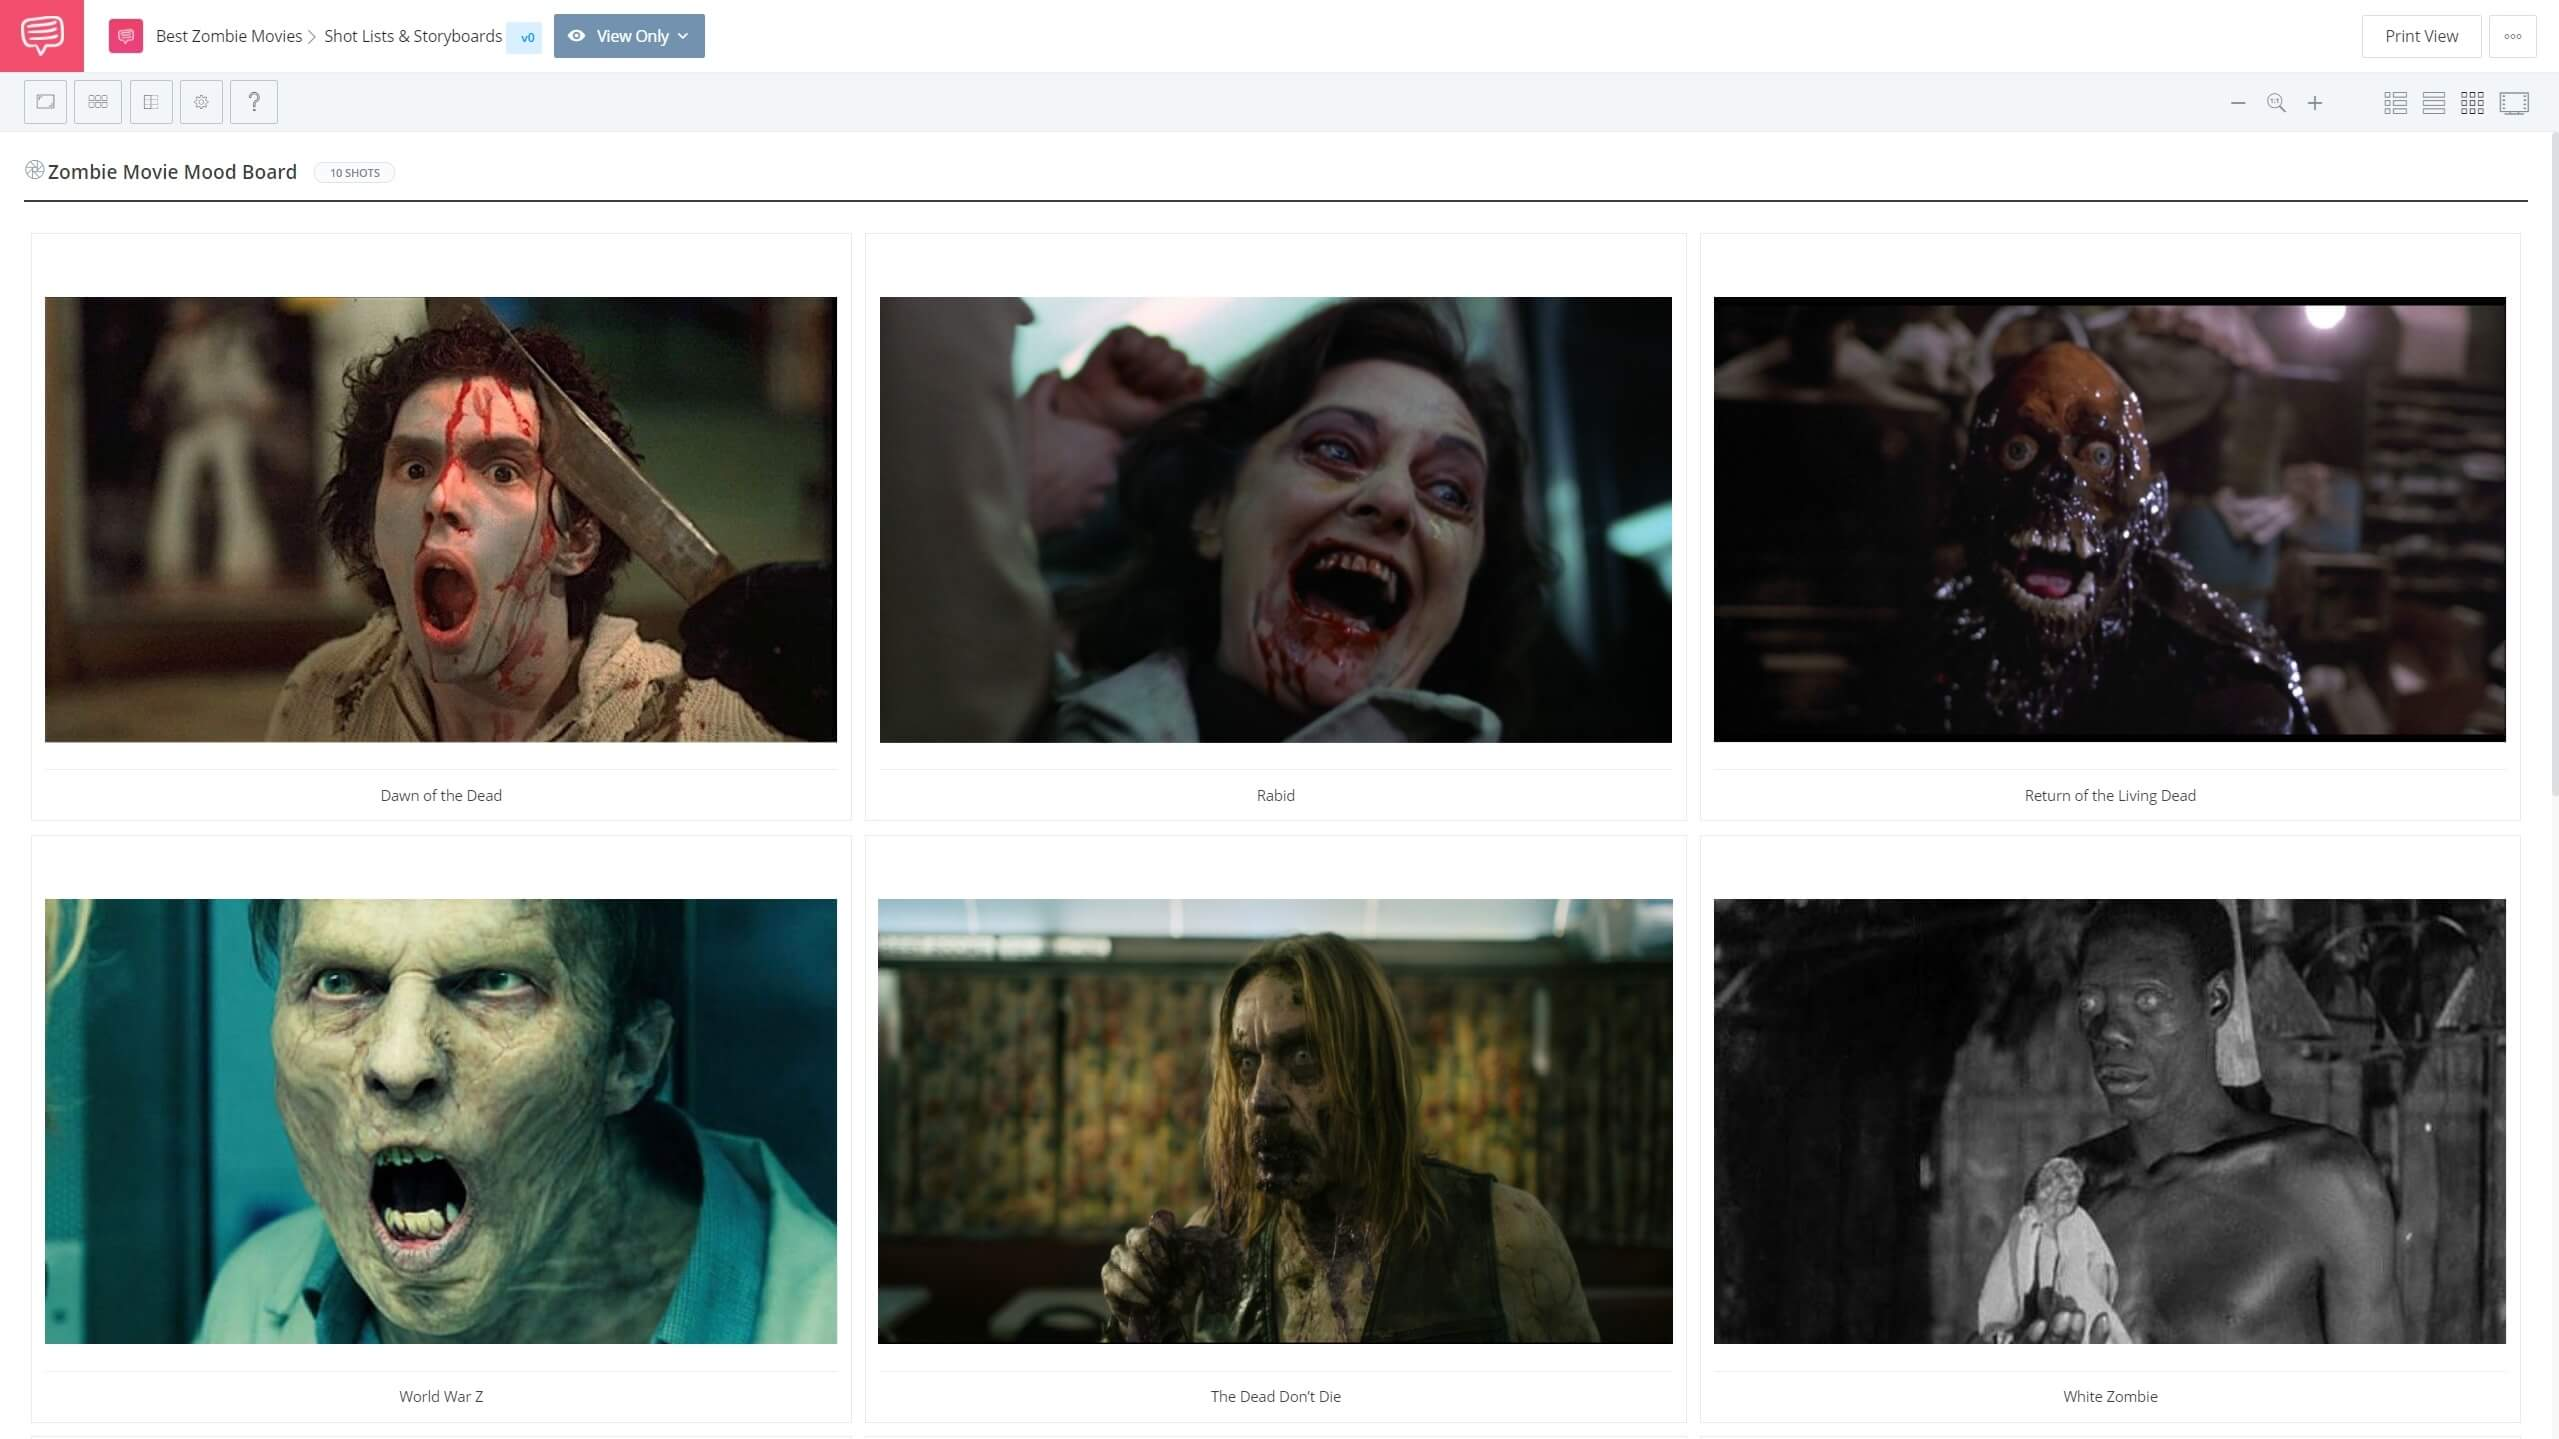 Best Zombie Movies - Zombie Movie Moodboard - StudioBinder Shot Listing Software